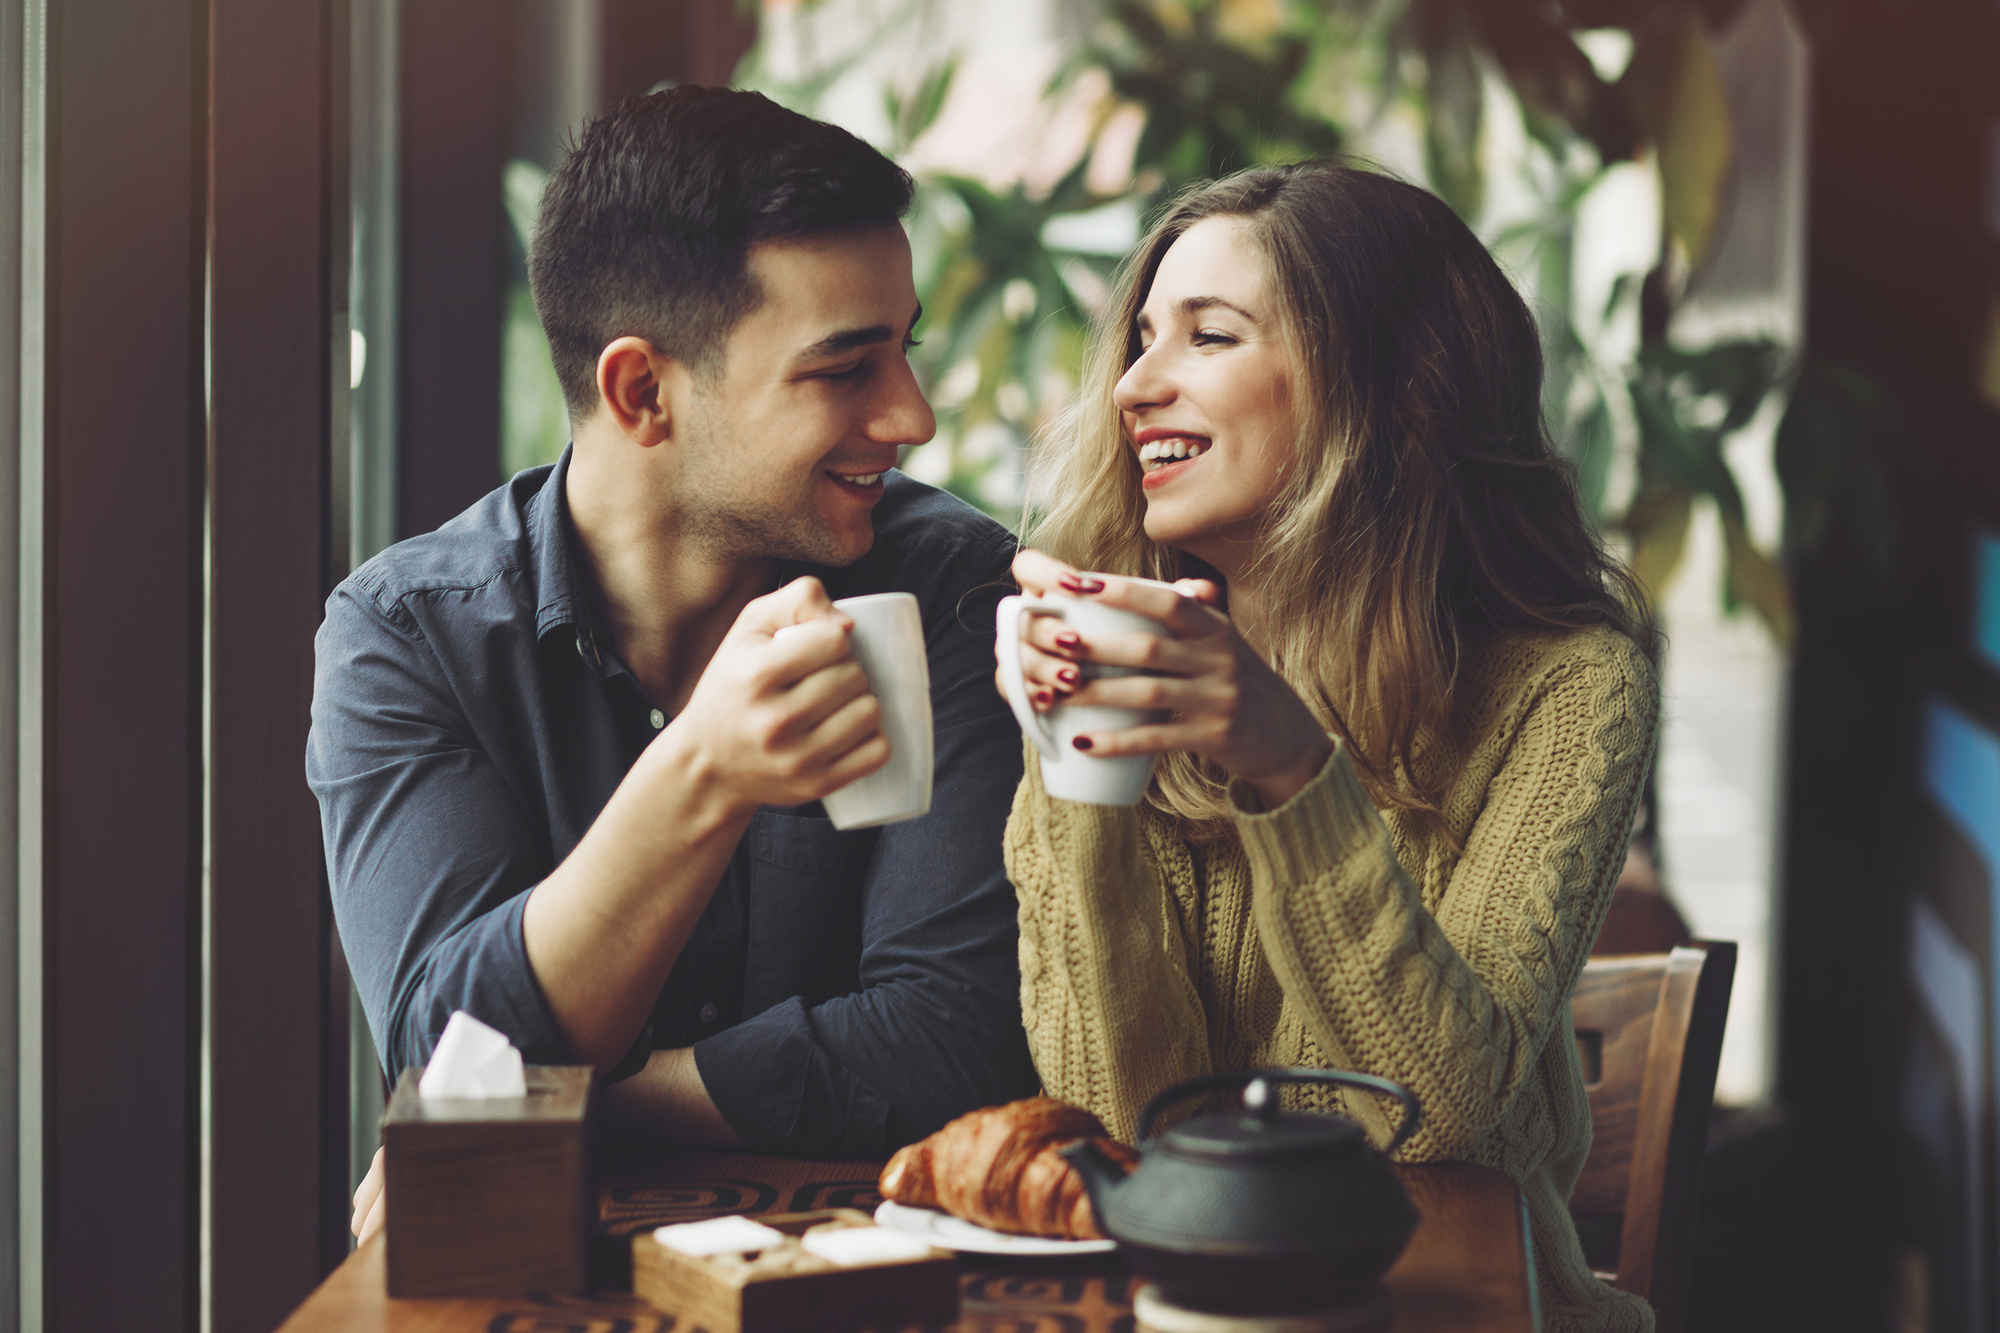 Couple in love drinking coffee and have fun in coffee shop